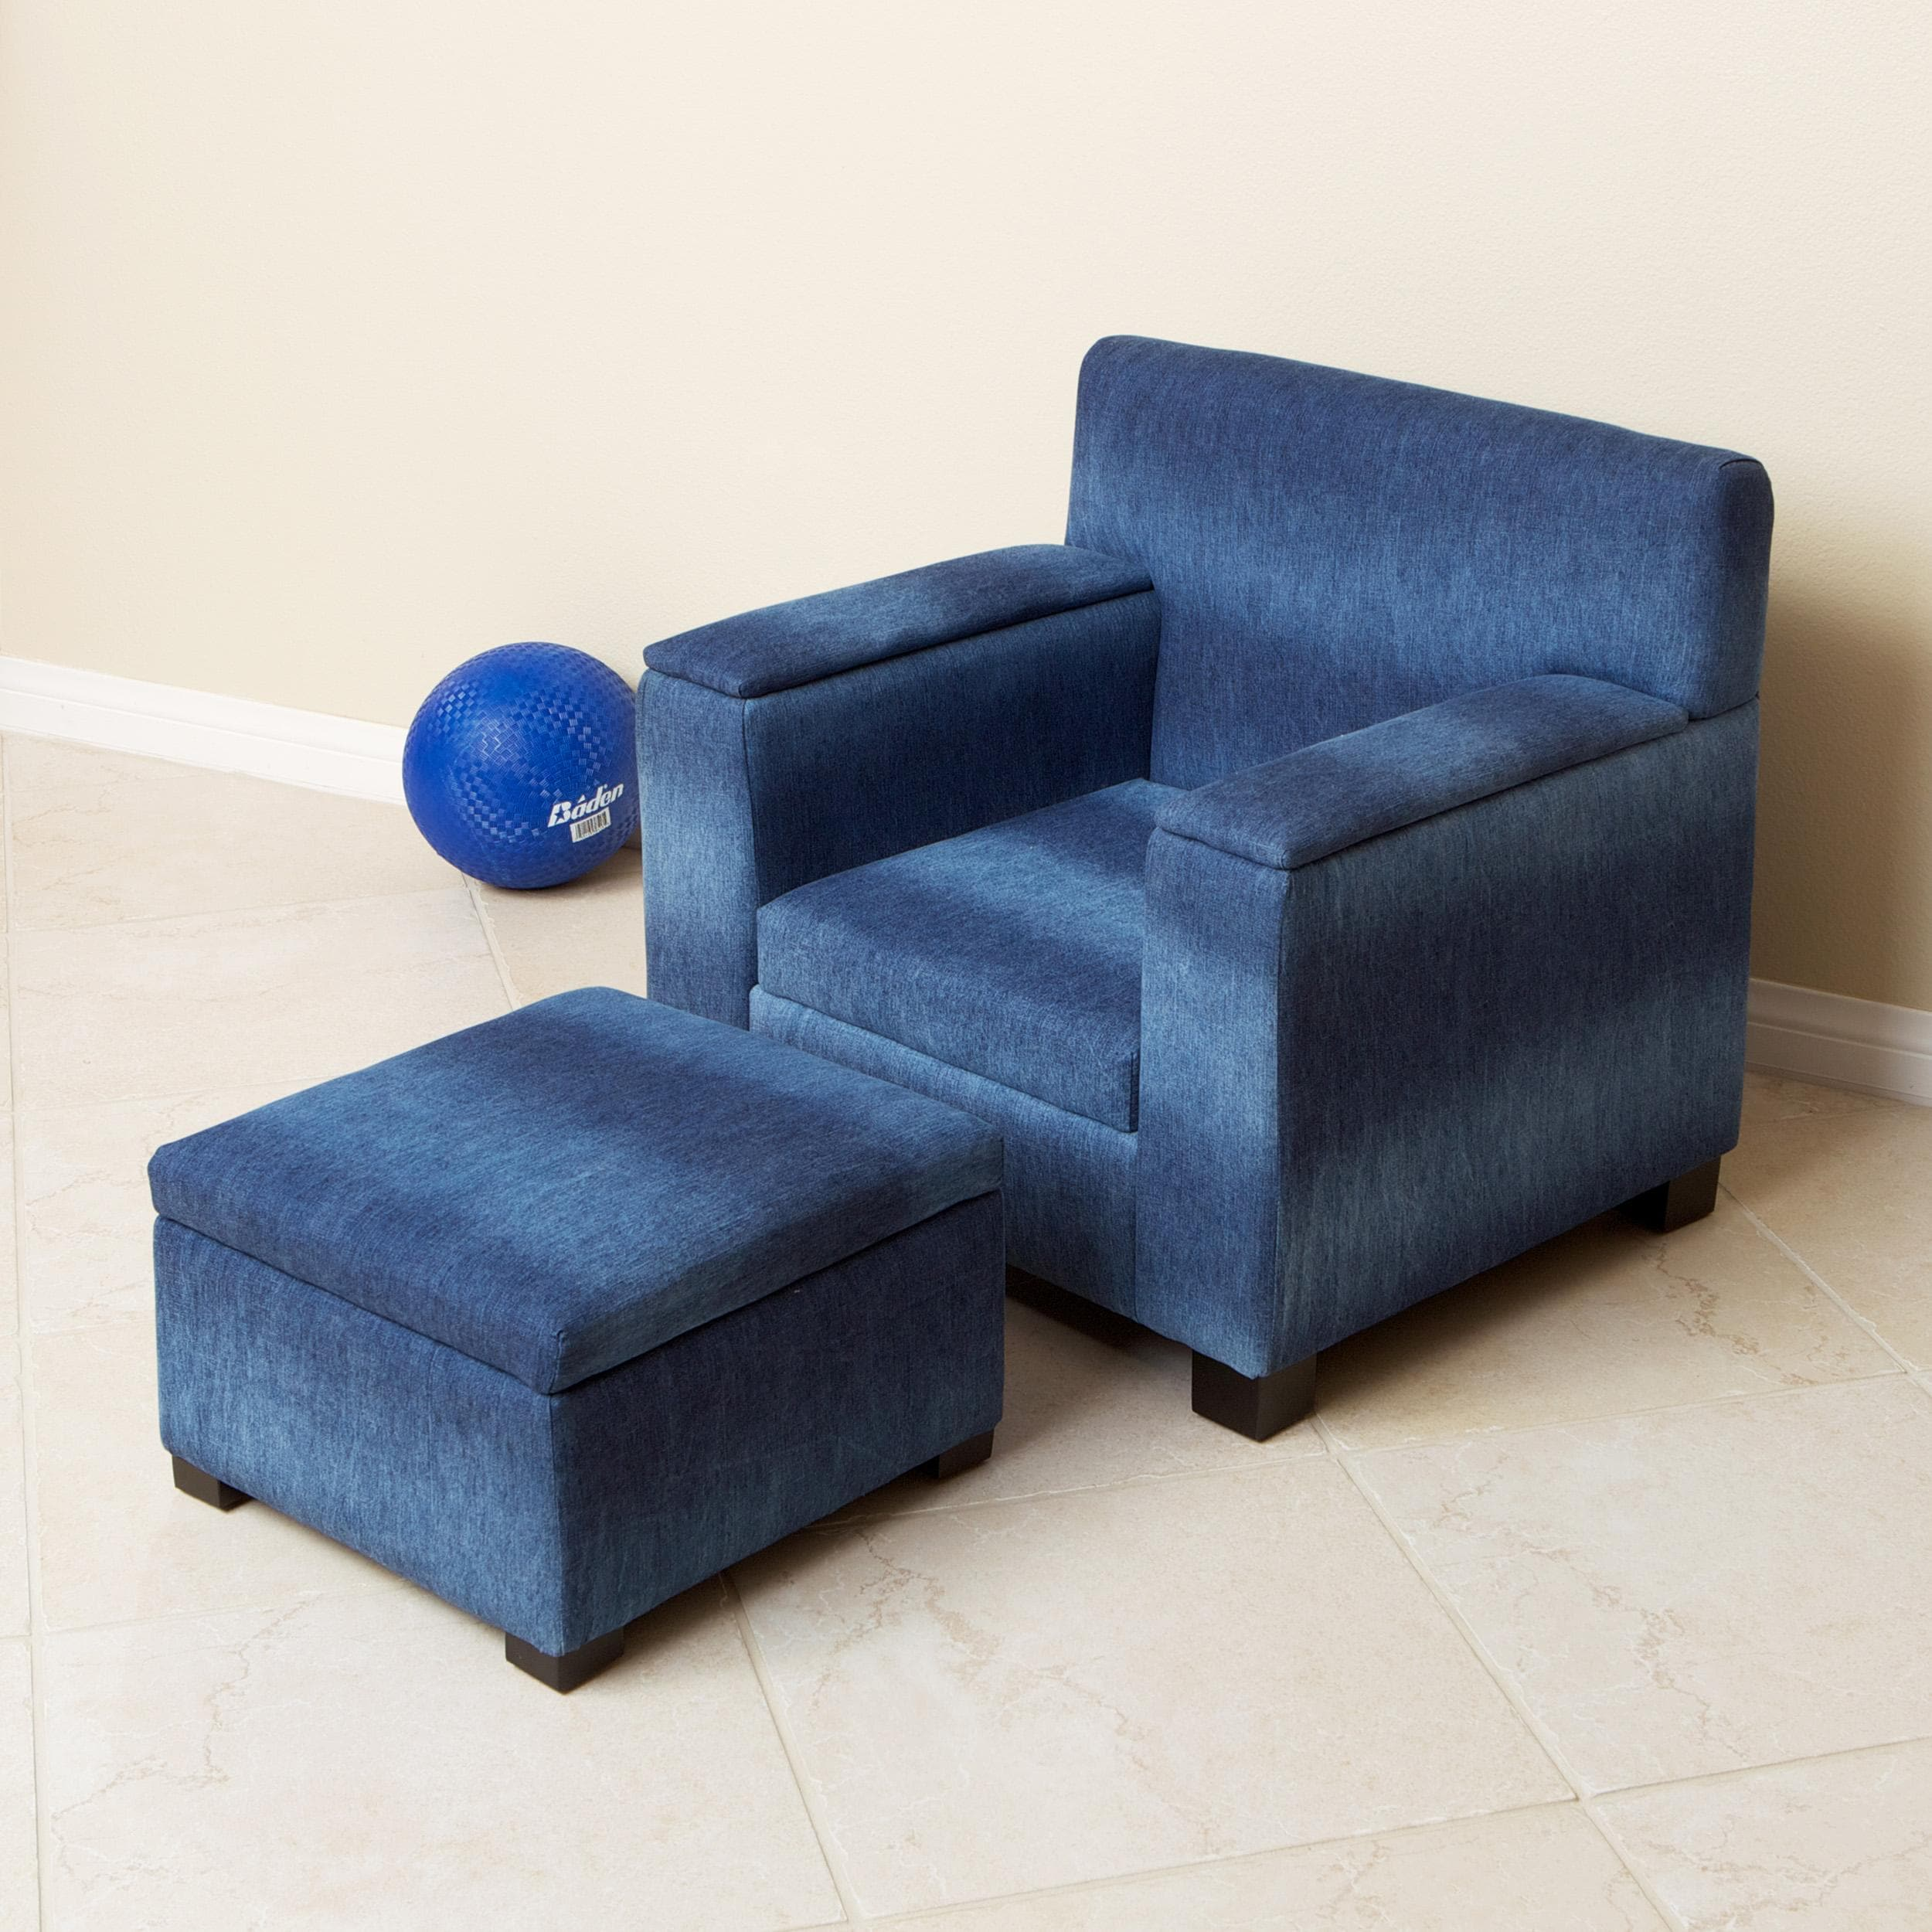 Chair And Ottoman Deals On 1001 Blocks